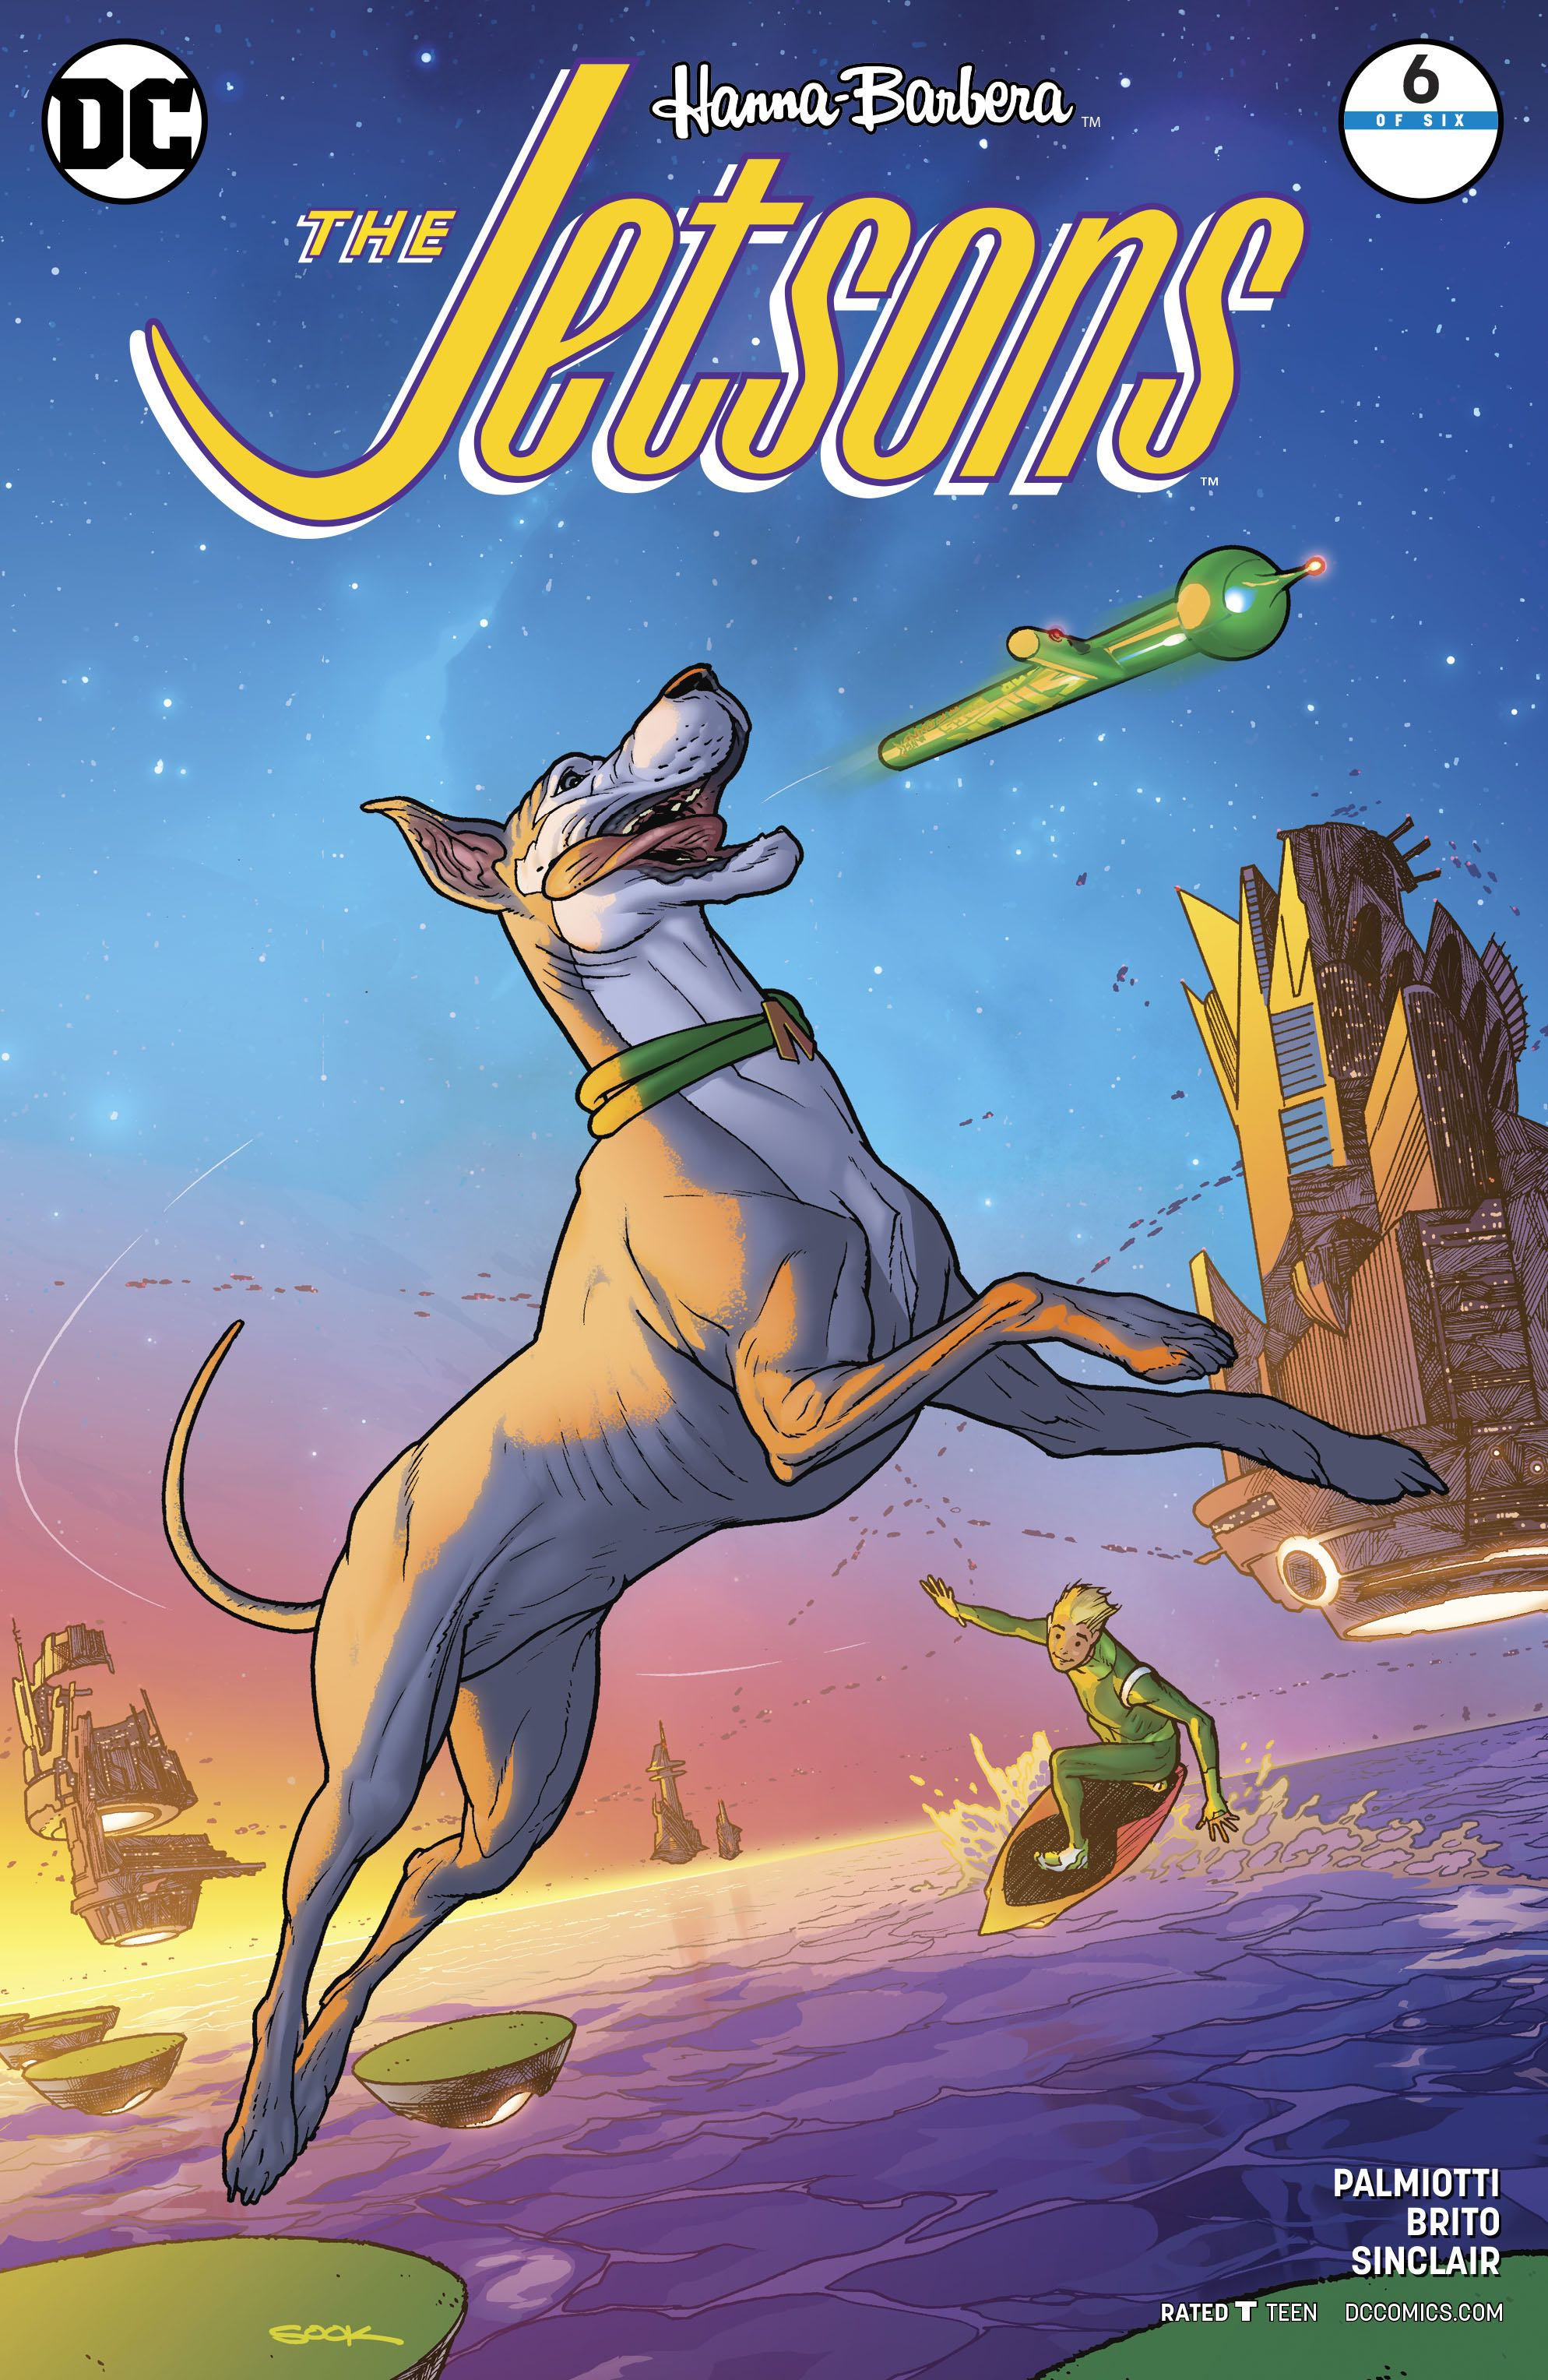 The Jetsons #6 (Variant Cover) | Fresh Comics